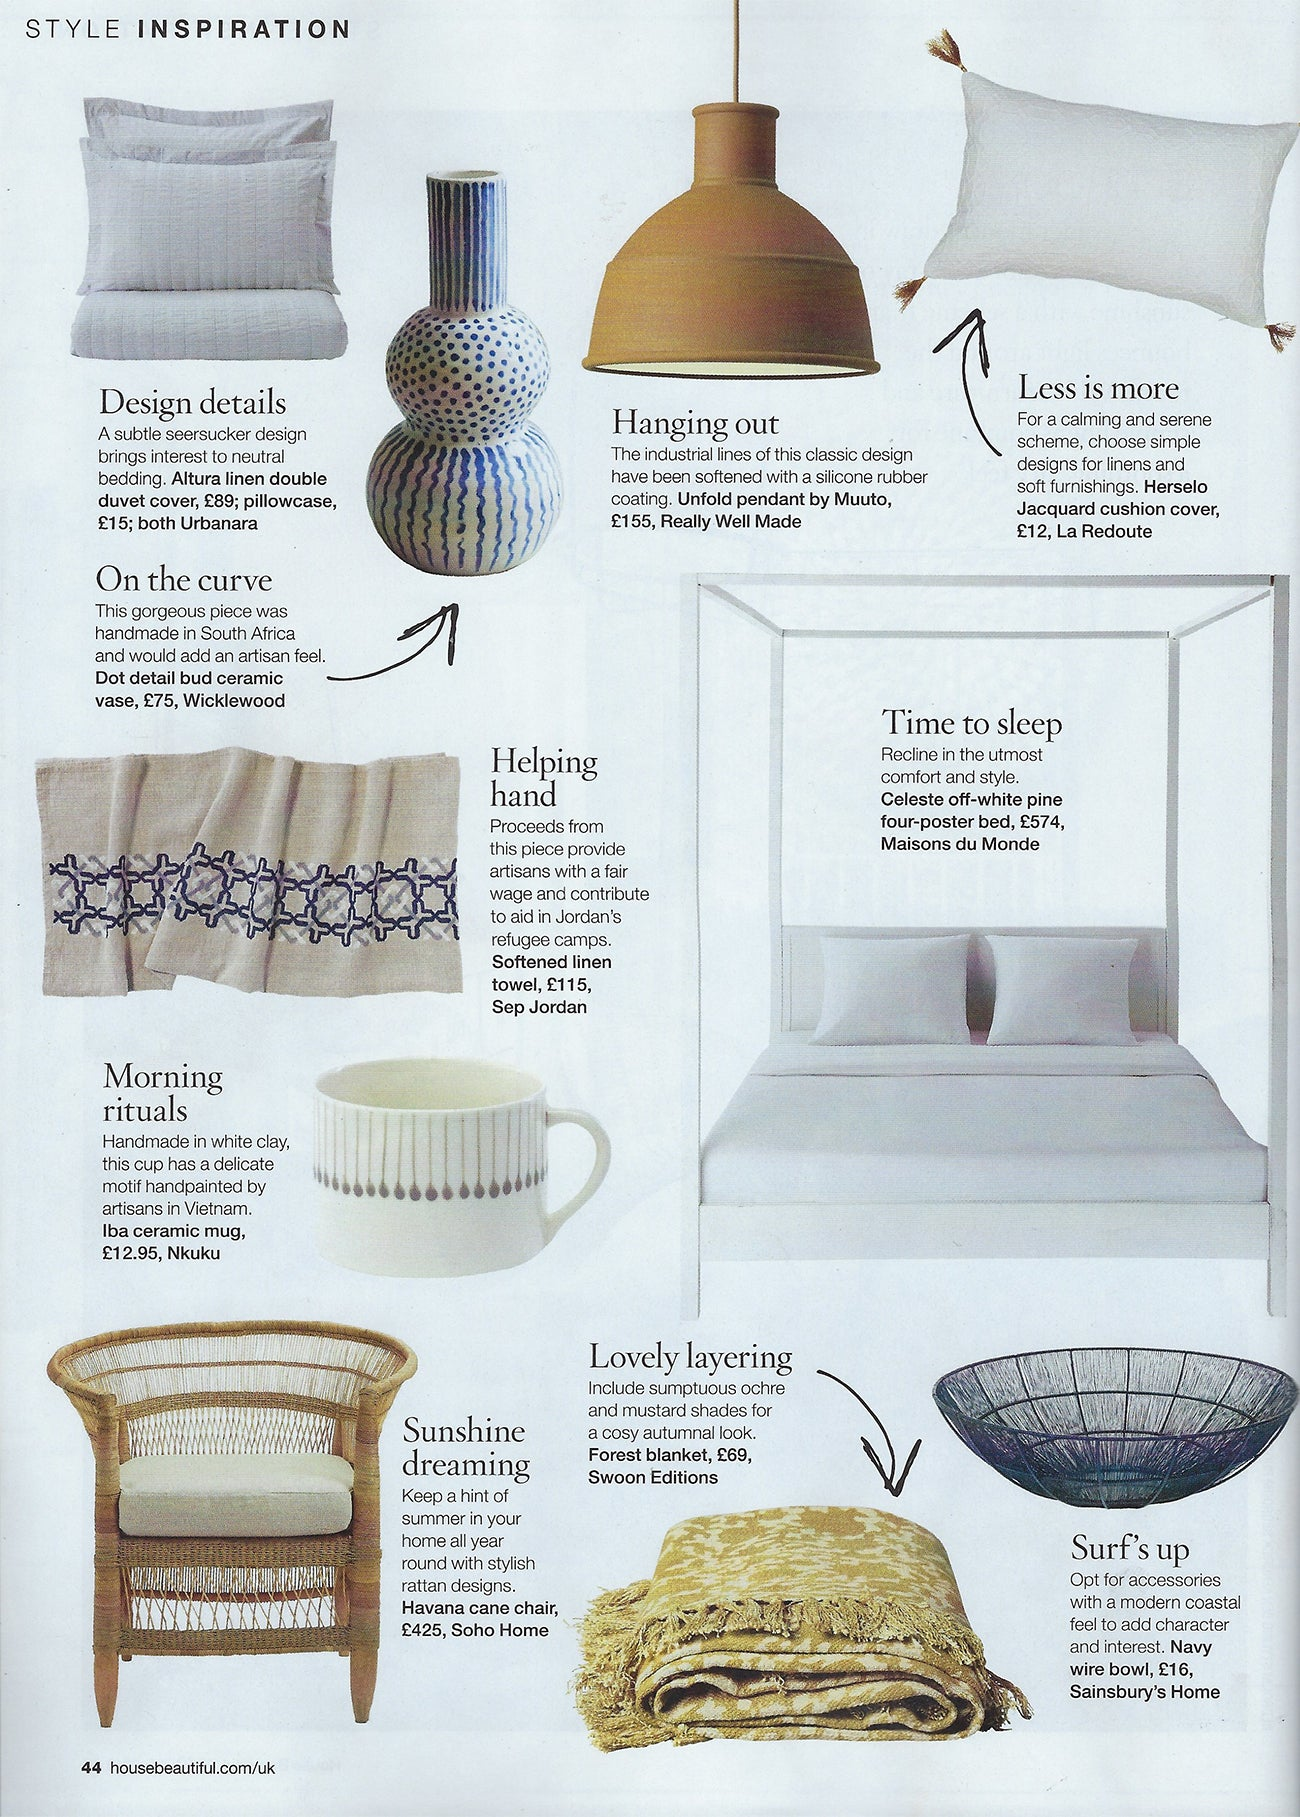 House Beautiful Style Inspiration Article - featuring Wicklewood's blue and white Dot Detail Bud Ceramic Vase from South Africa